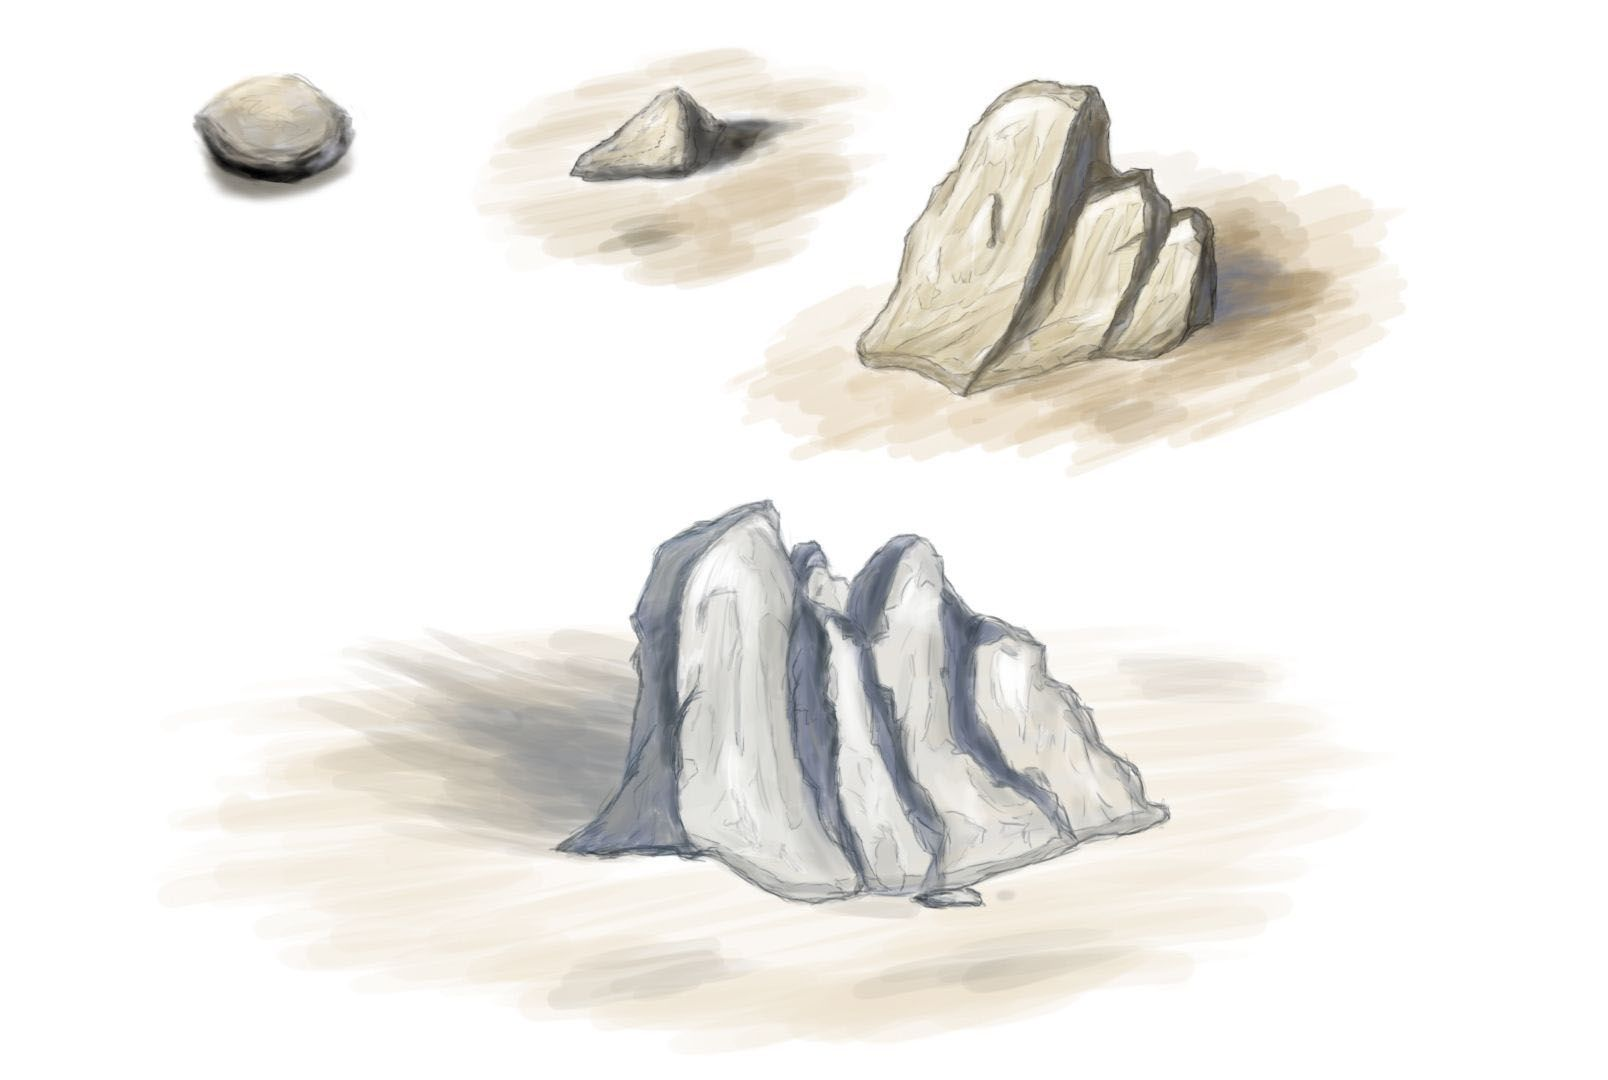 Scribble: SteineScribble: rocks!